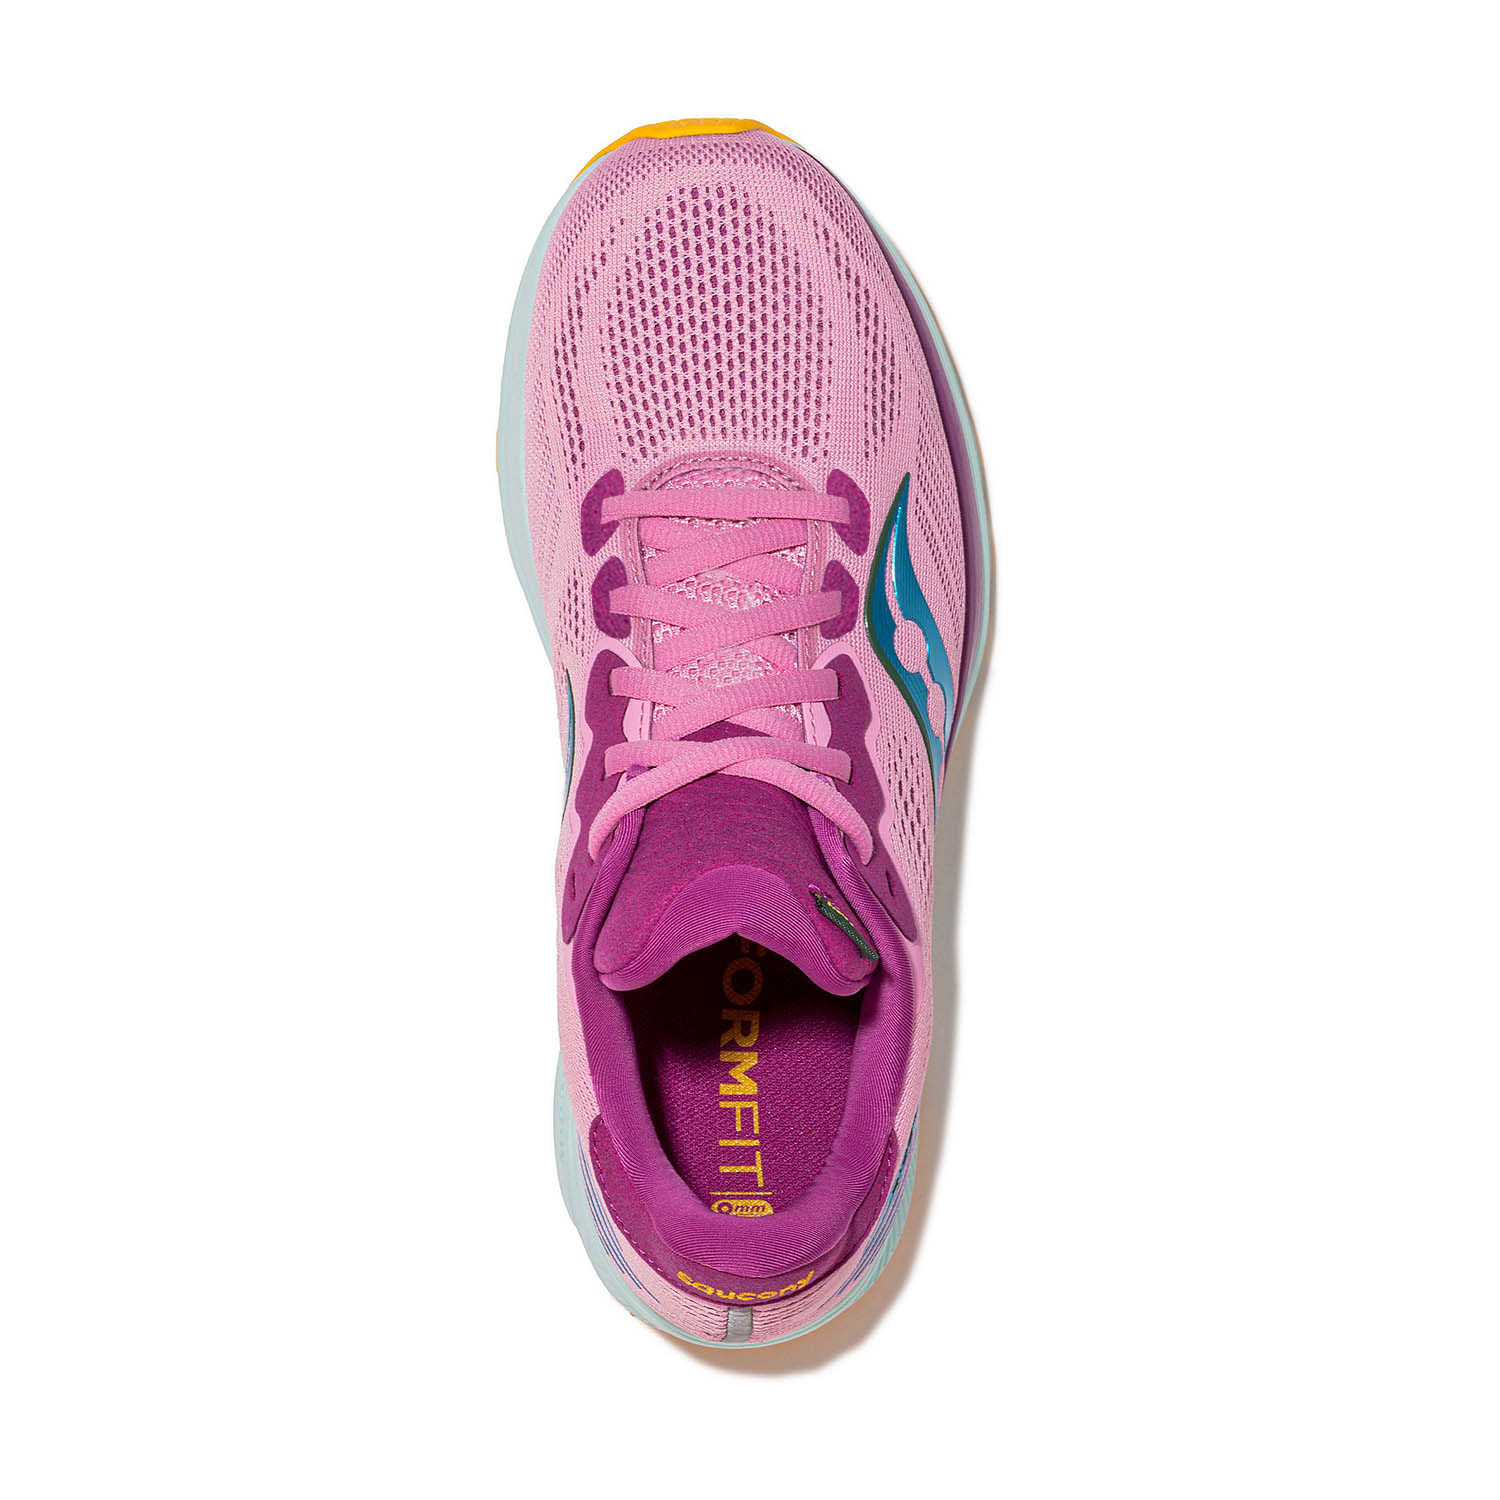 Saucony Ride 14 - Future Pink